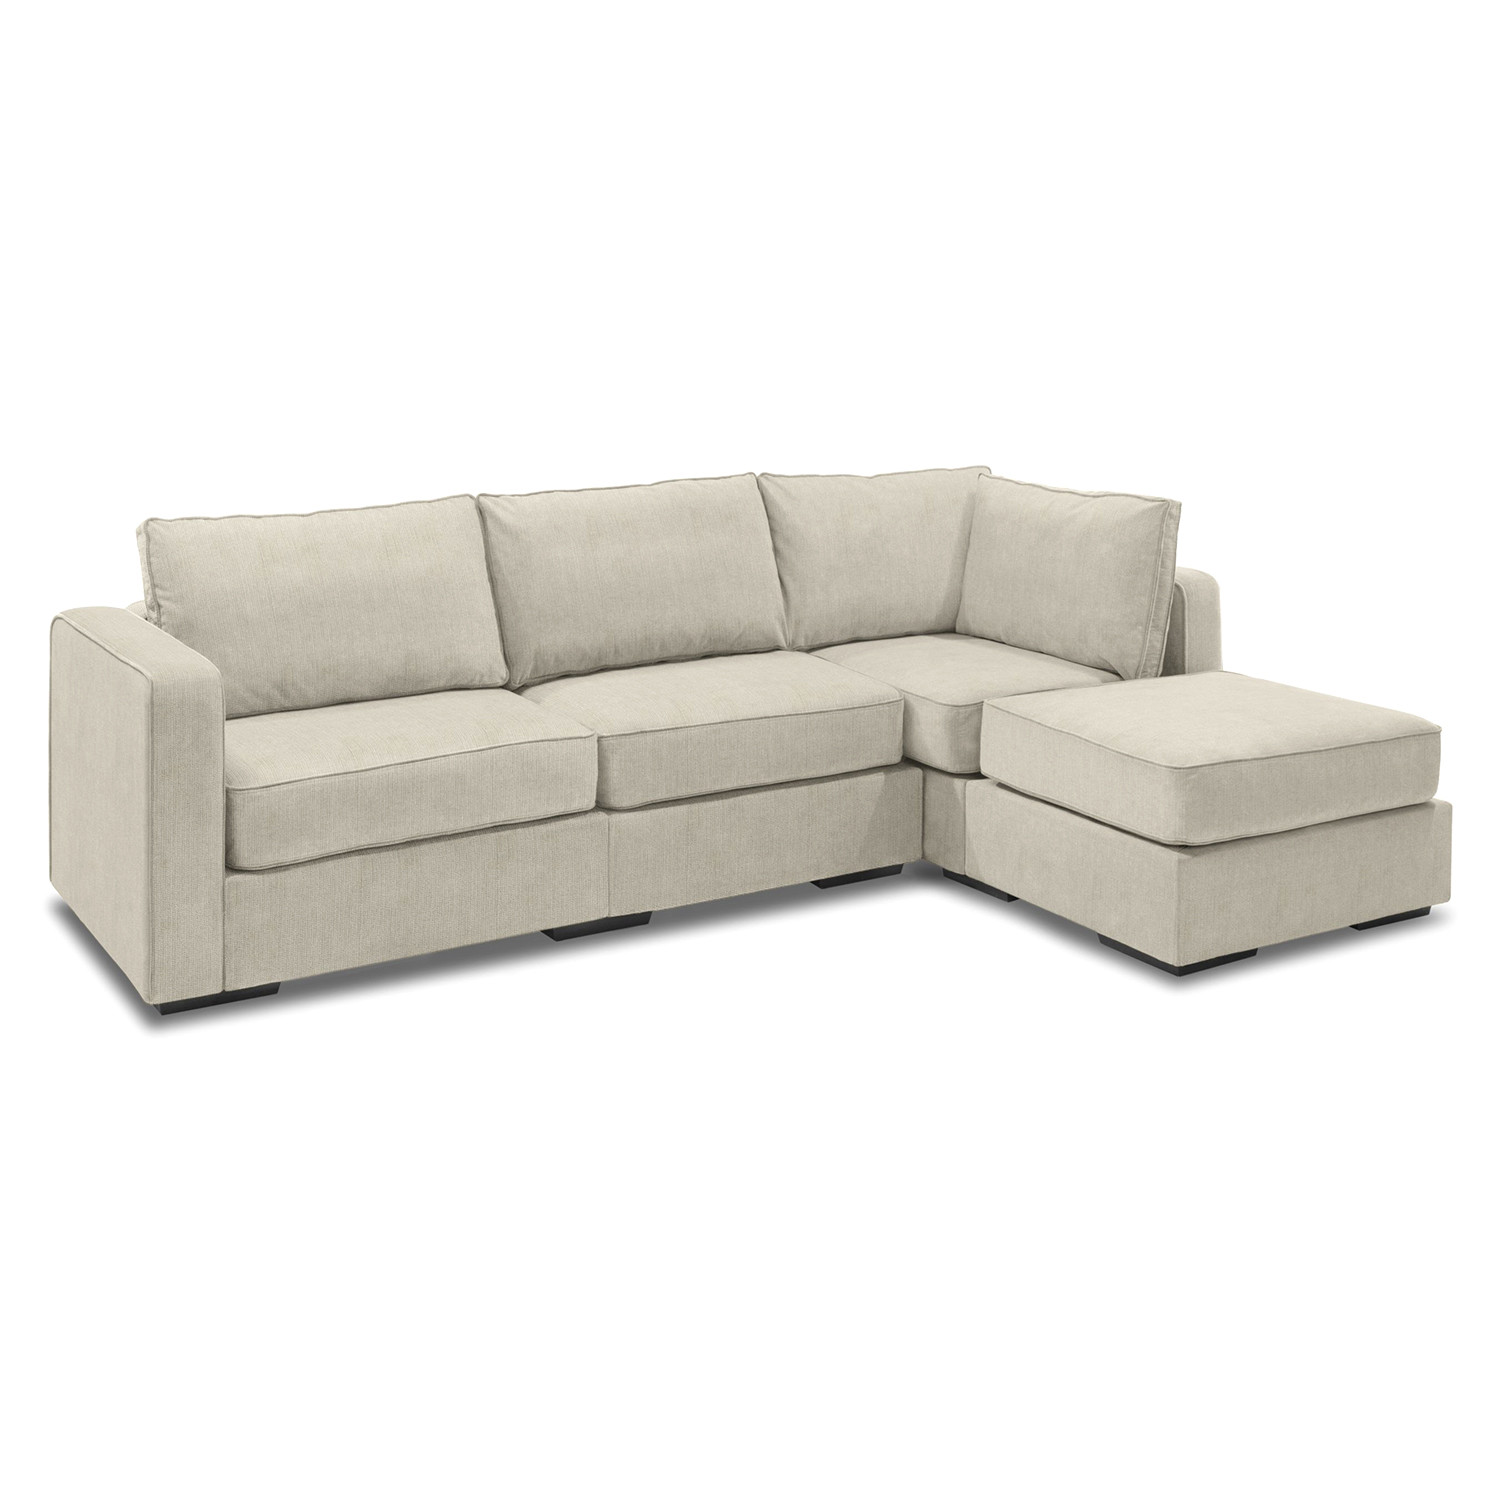 5 series sactionals chaise sectional taupe lovesac. Black Bedroom Furniture Sets. Home Design Ideas